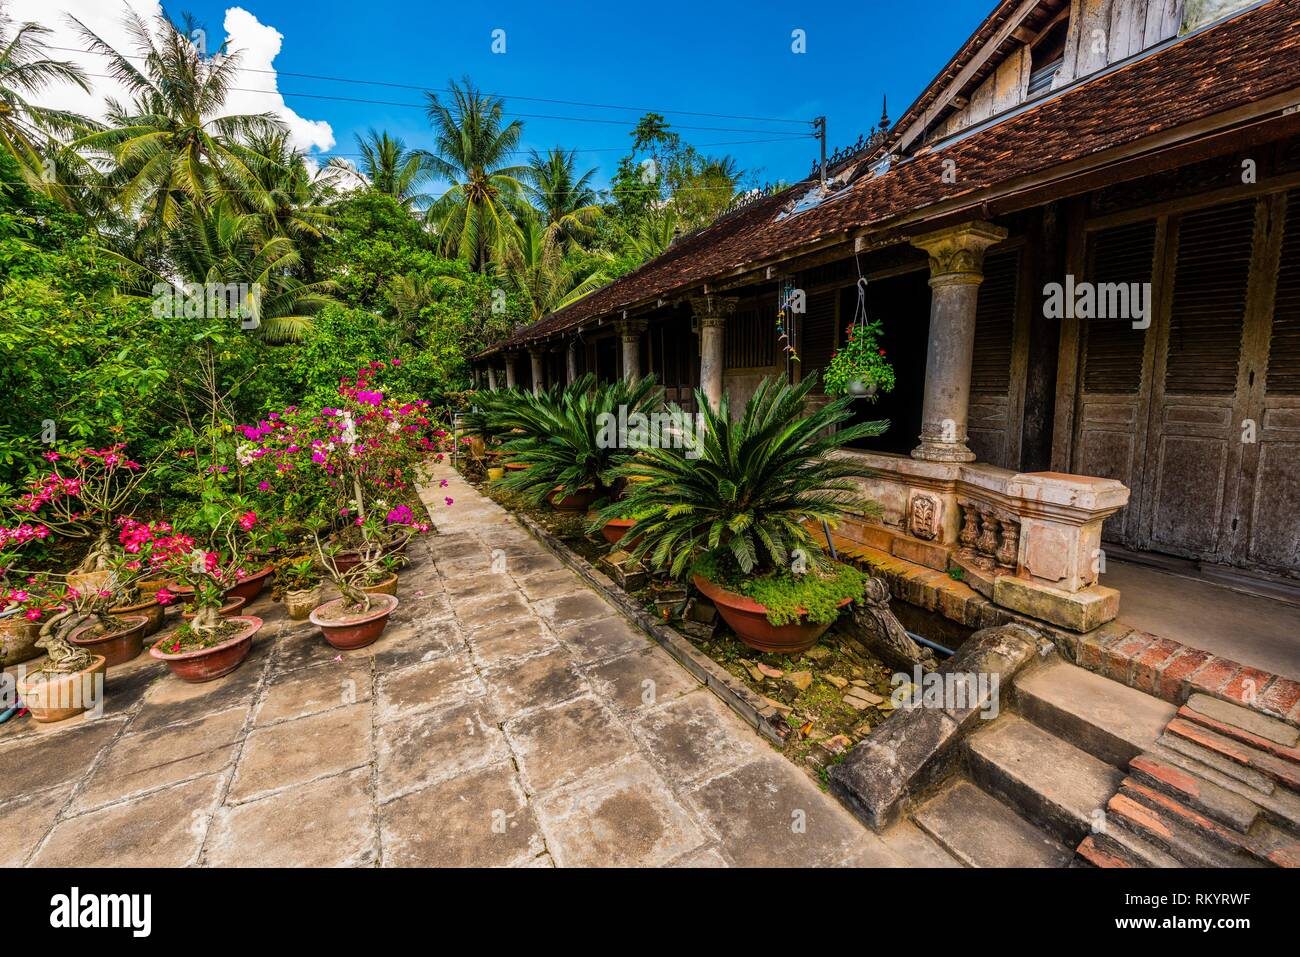 Local house, Cai Lay, Mekong Delta, Vietnam. - Stock Image